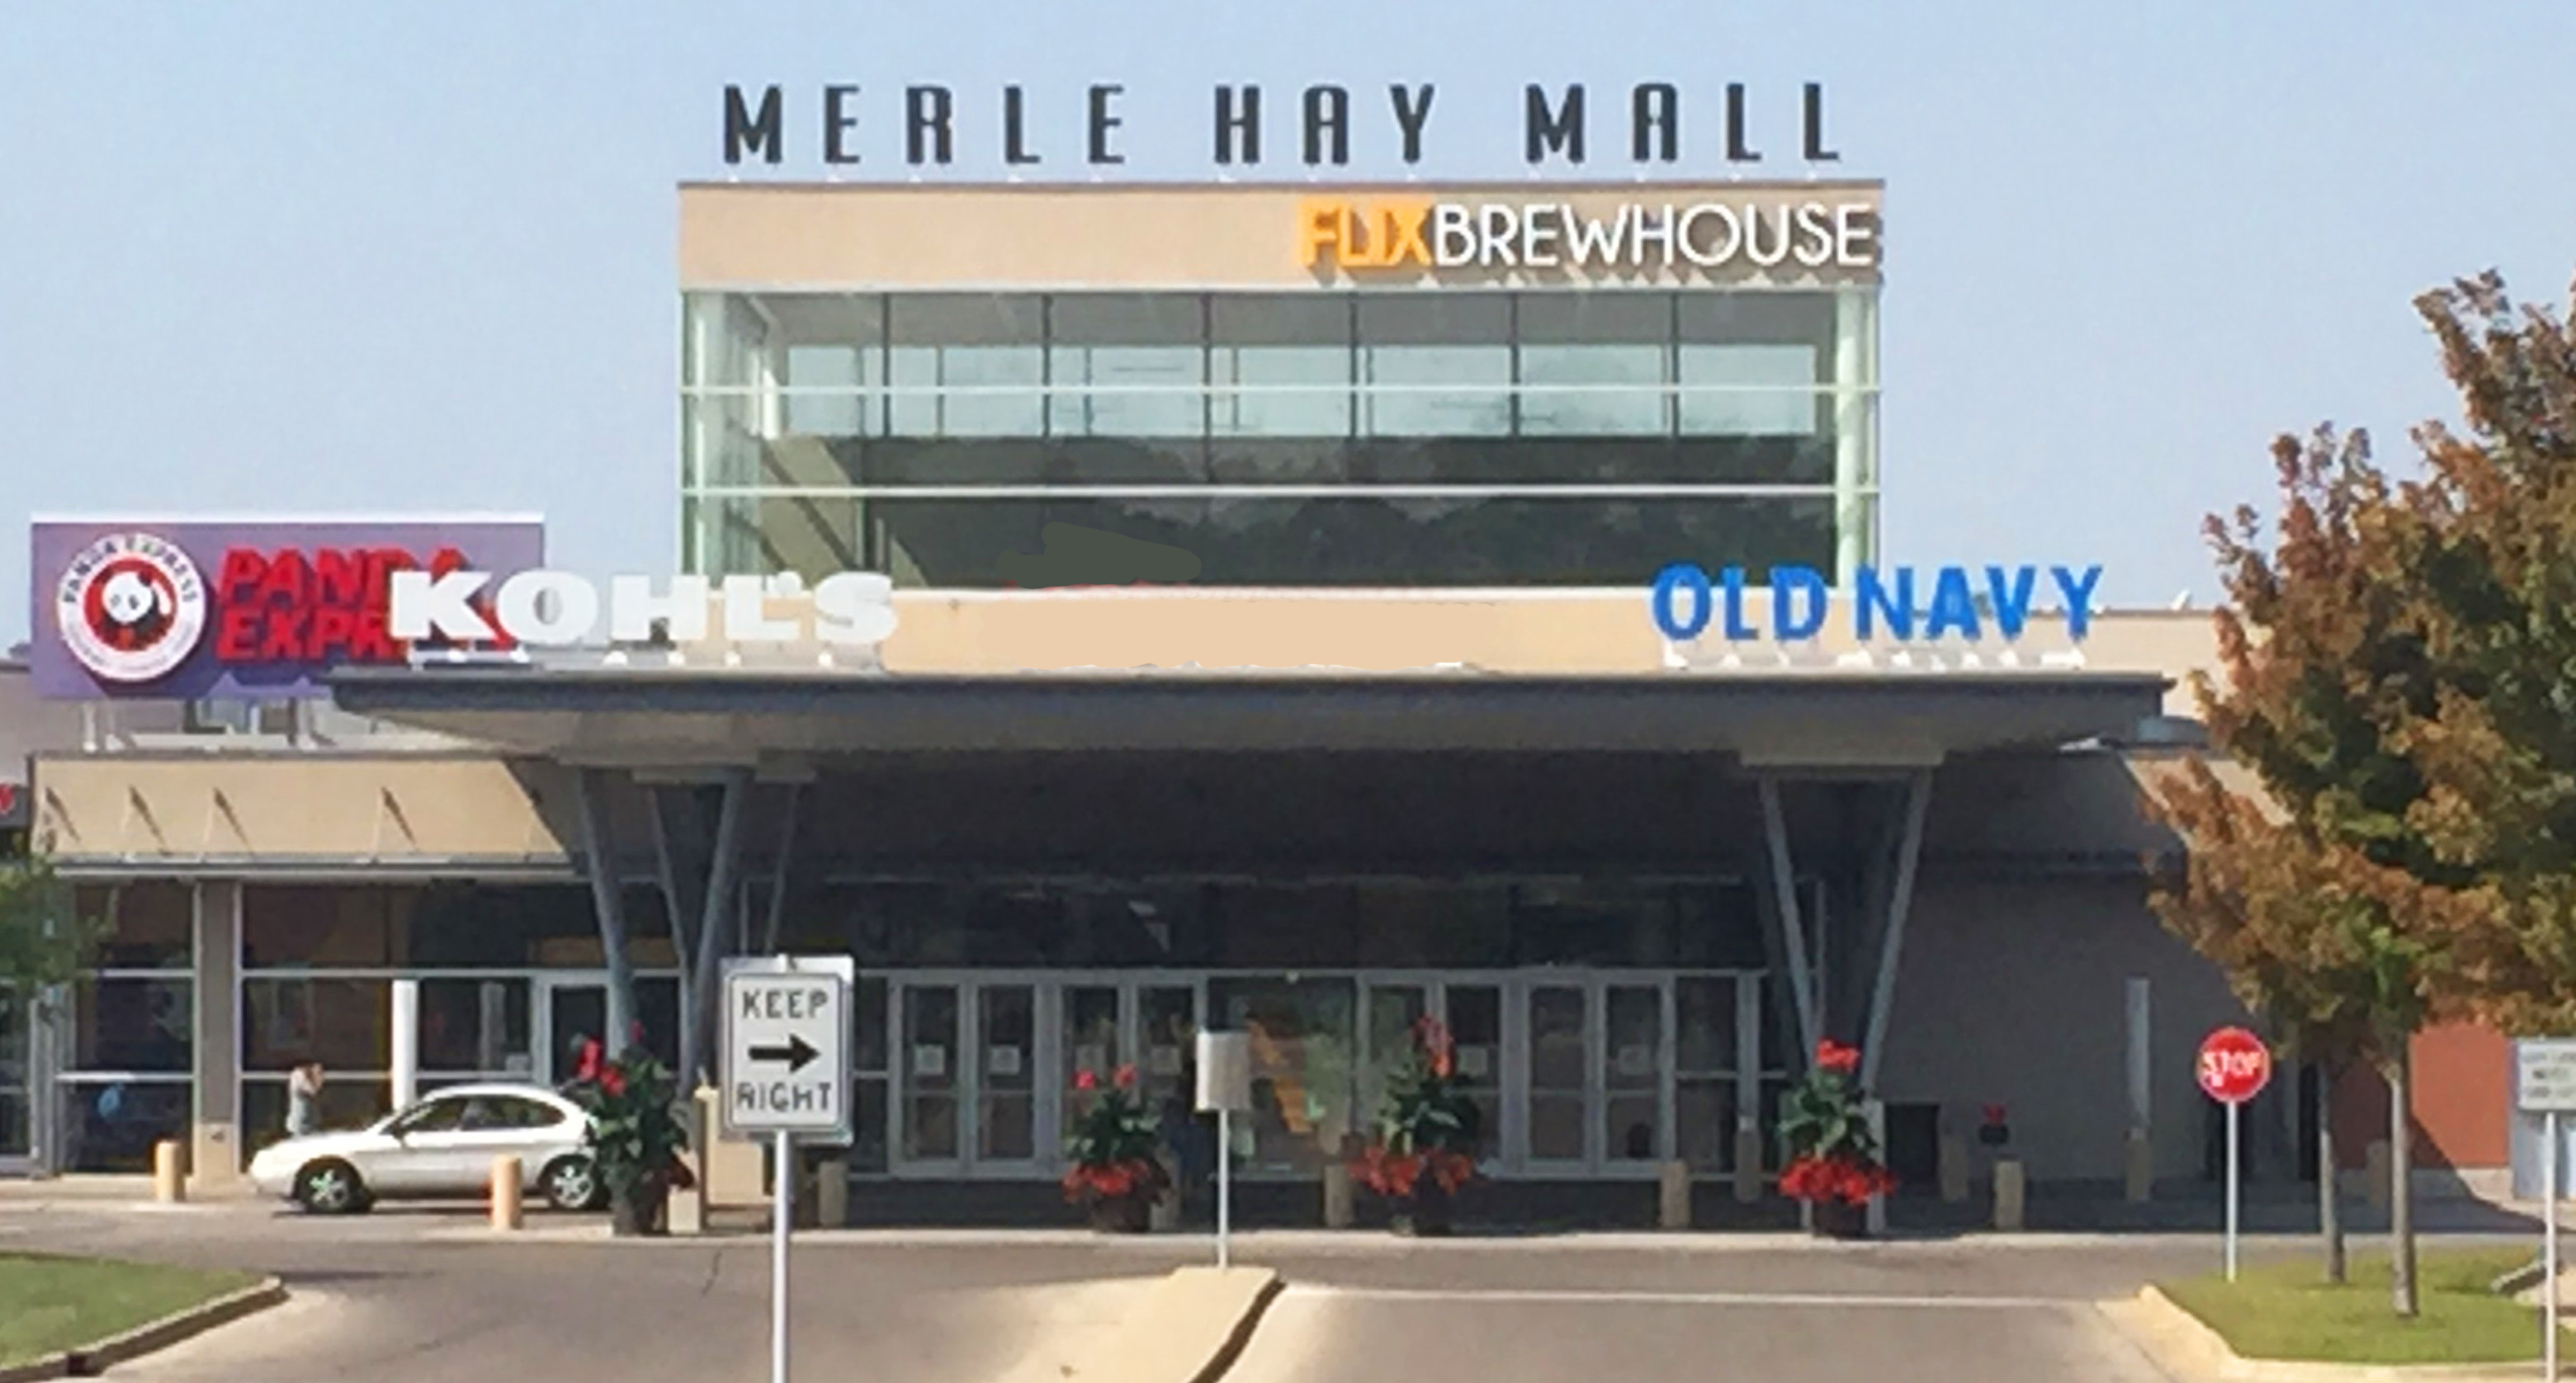 merle hay mall address